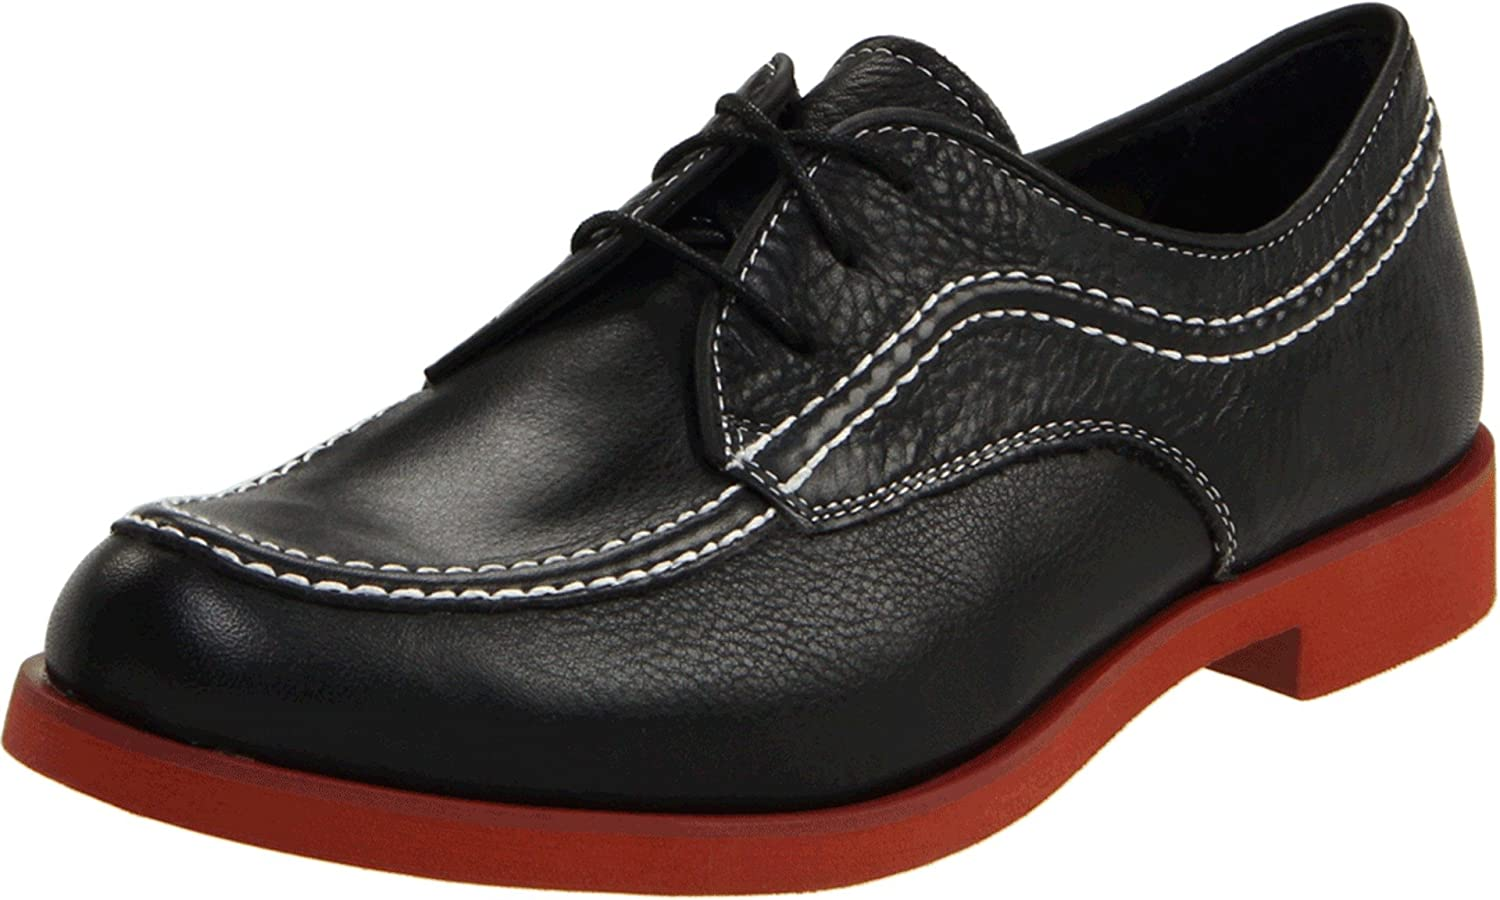 Hush Puppies Women's Keepsake Oxford